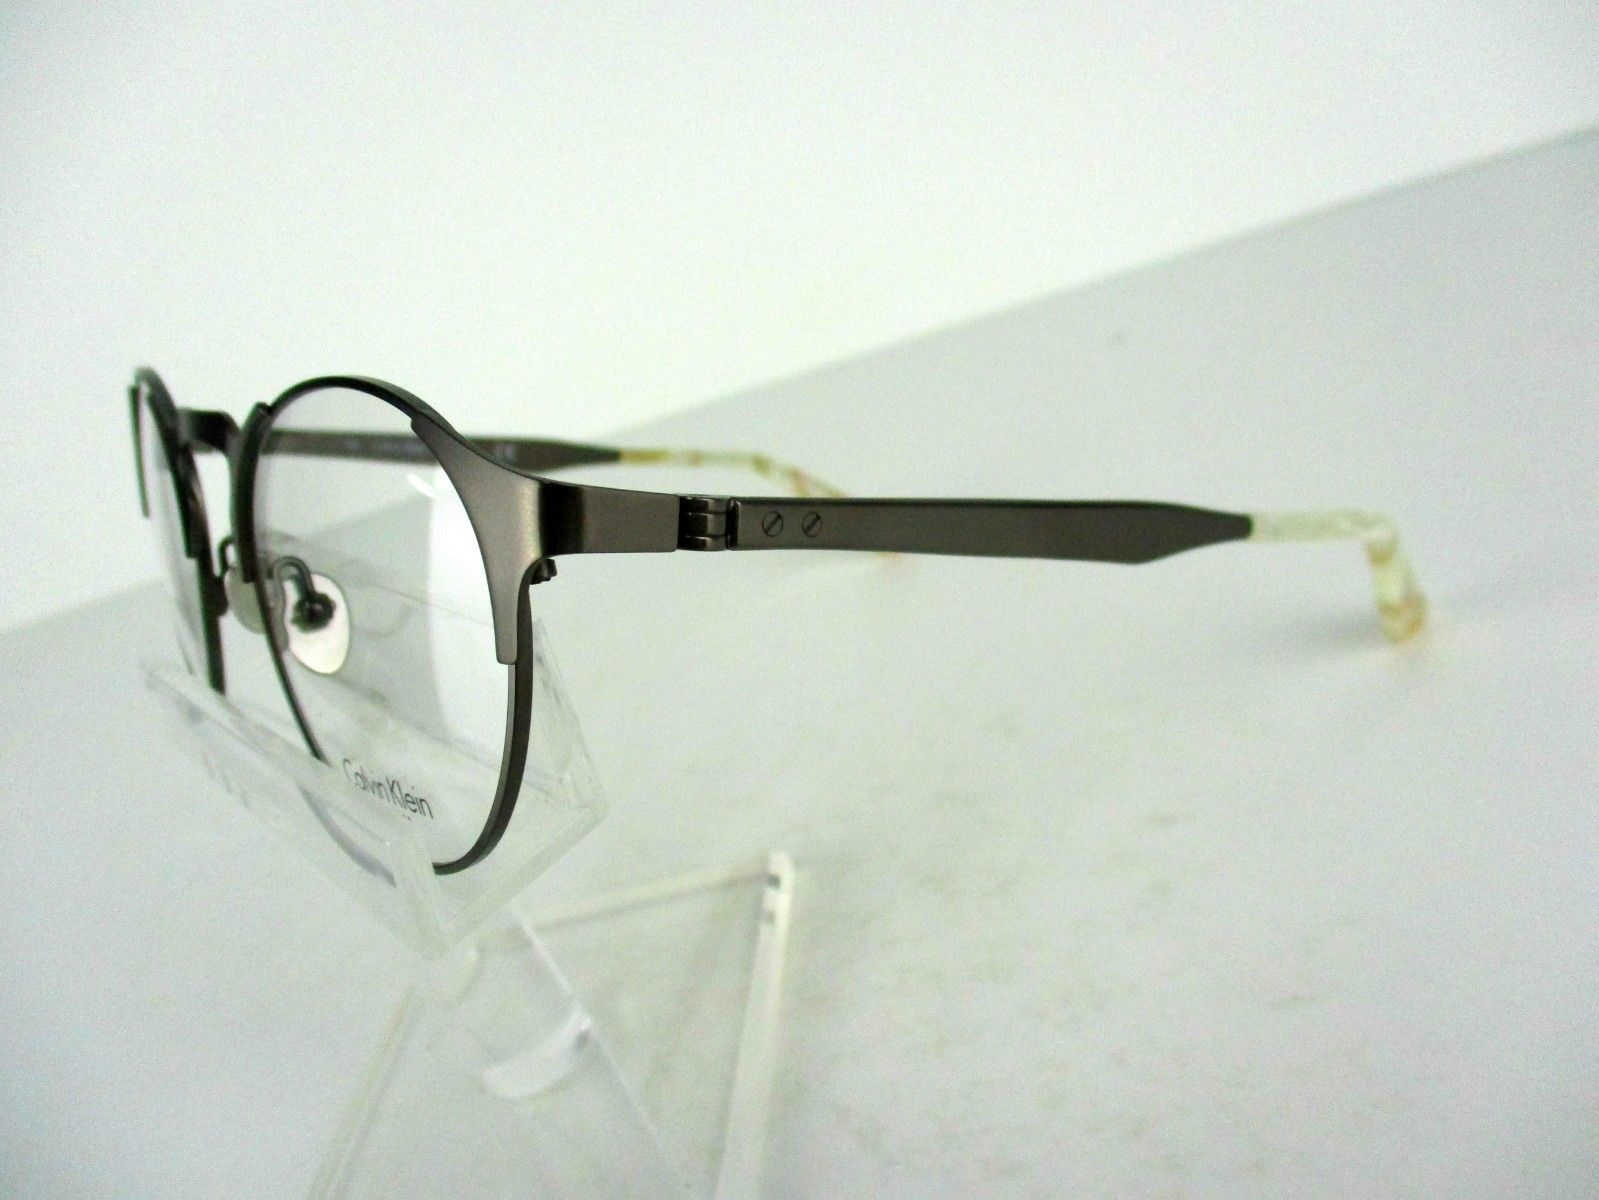 Calvin Klein Ck 8042 (015) Grey Satin 49 X 21 140 mm Eyeglass Frame